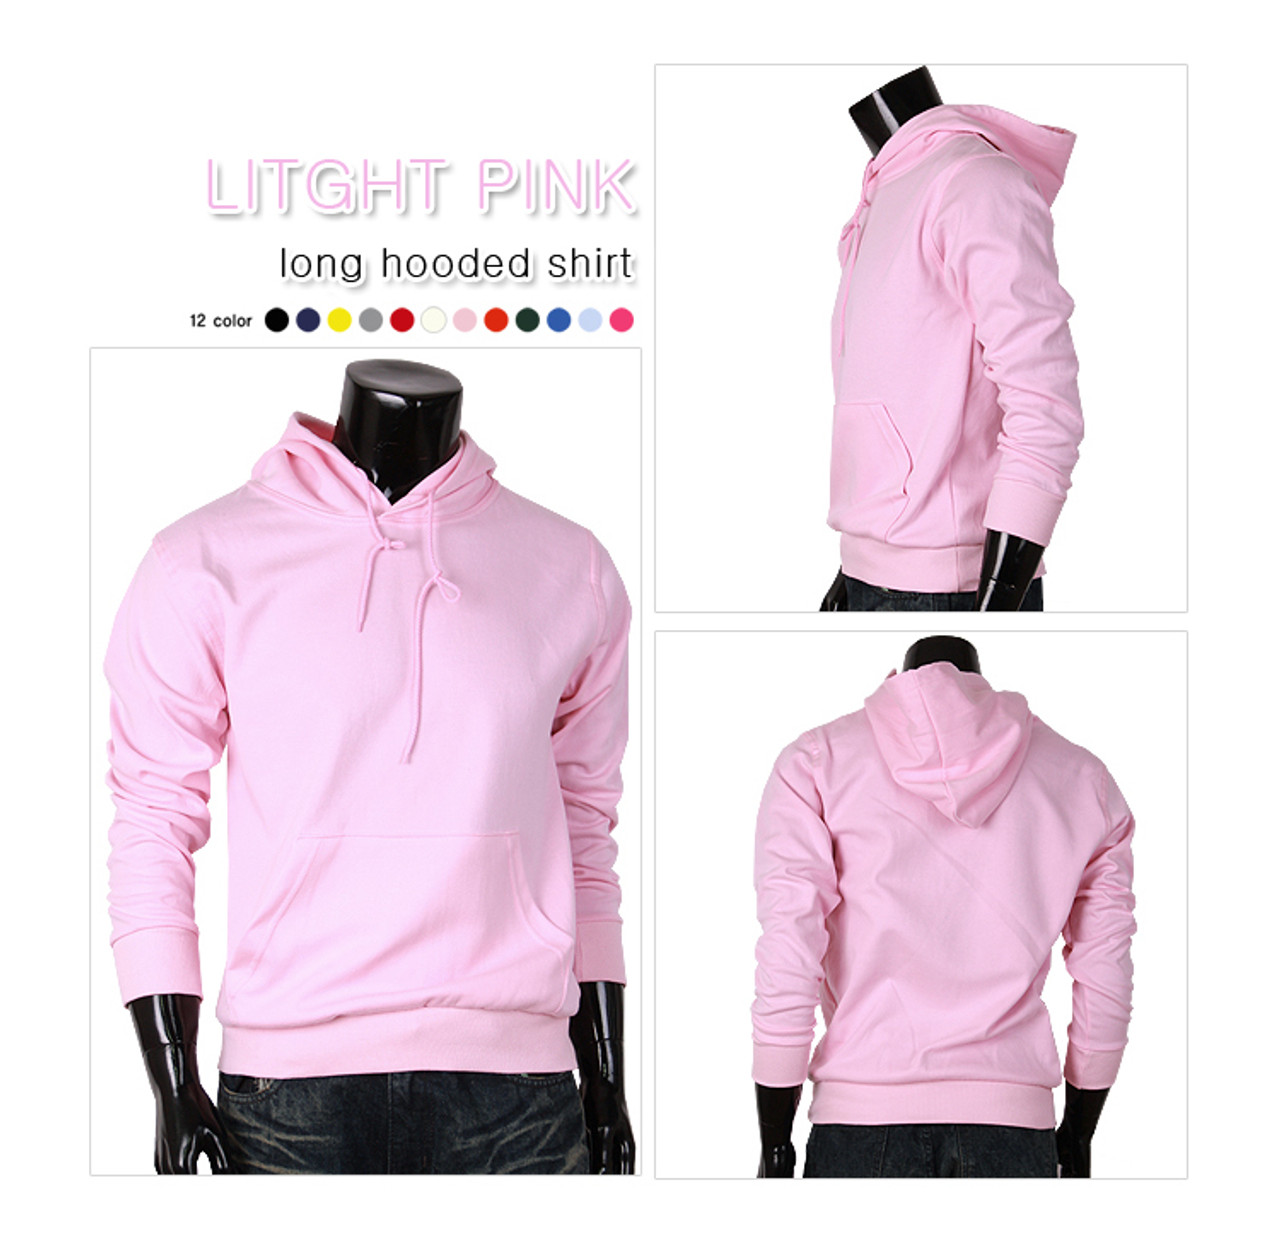 light-pink hoodie pullover for unisex cotton hoodie t-shirt men ...